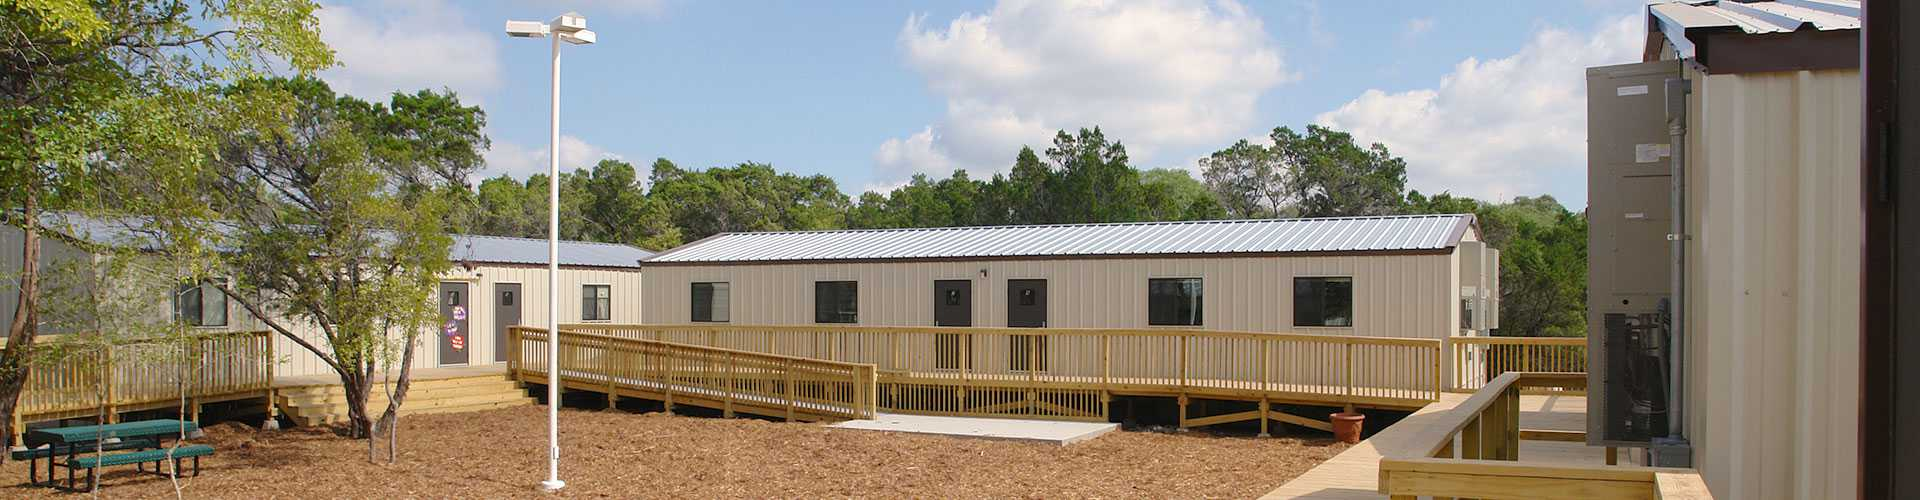 Modular Classroom Rental : Portable classroom buildings for rent or sale in texas